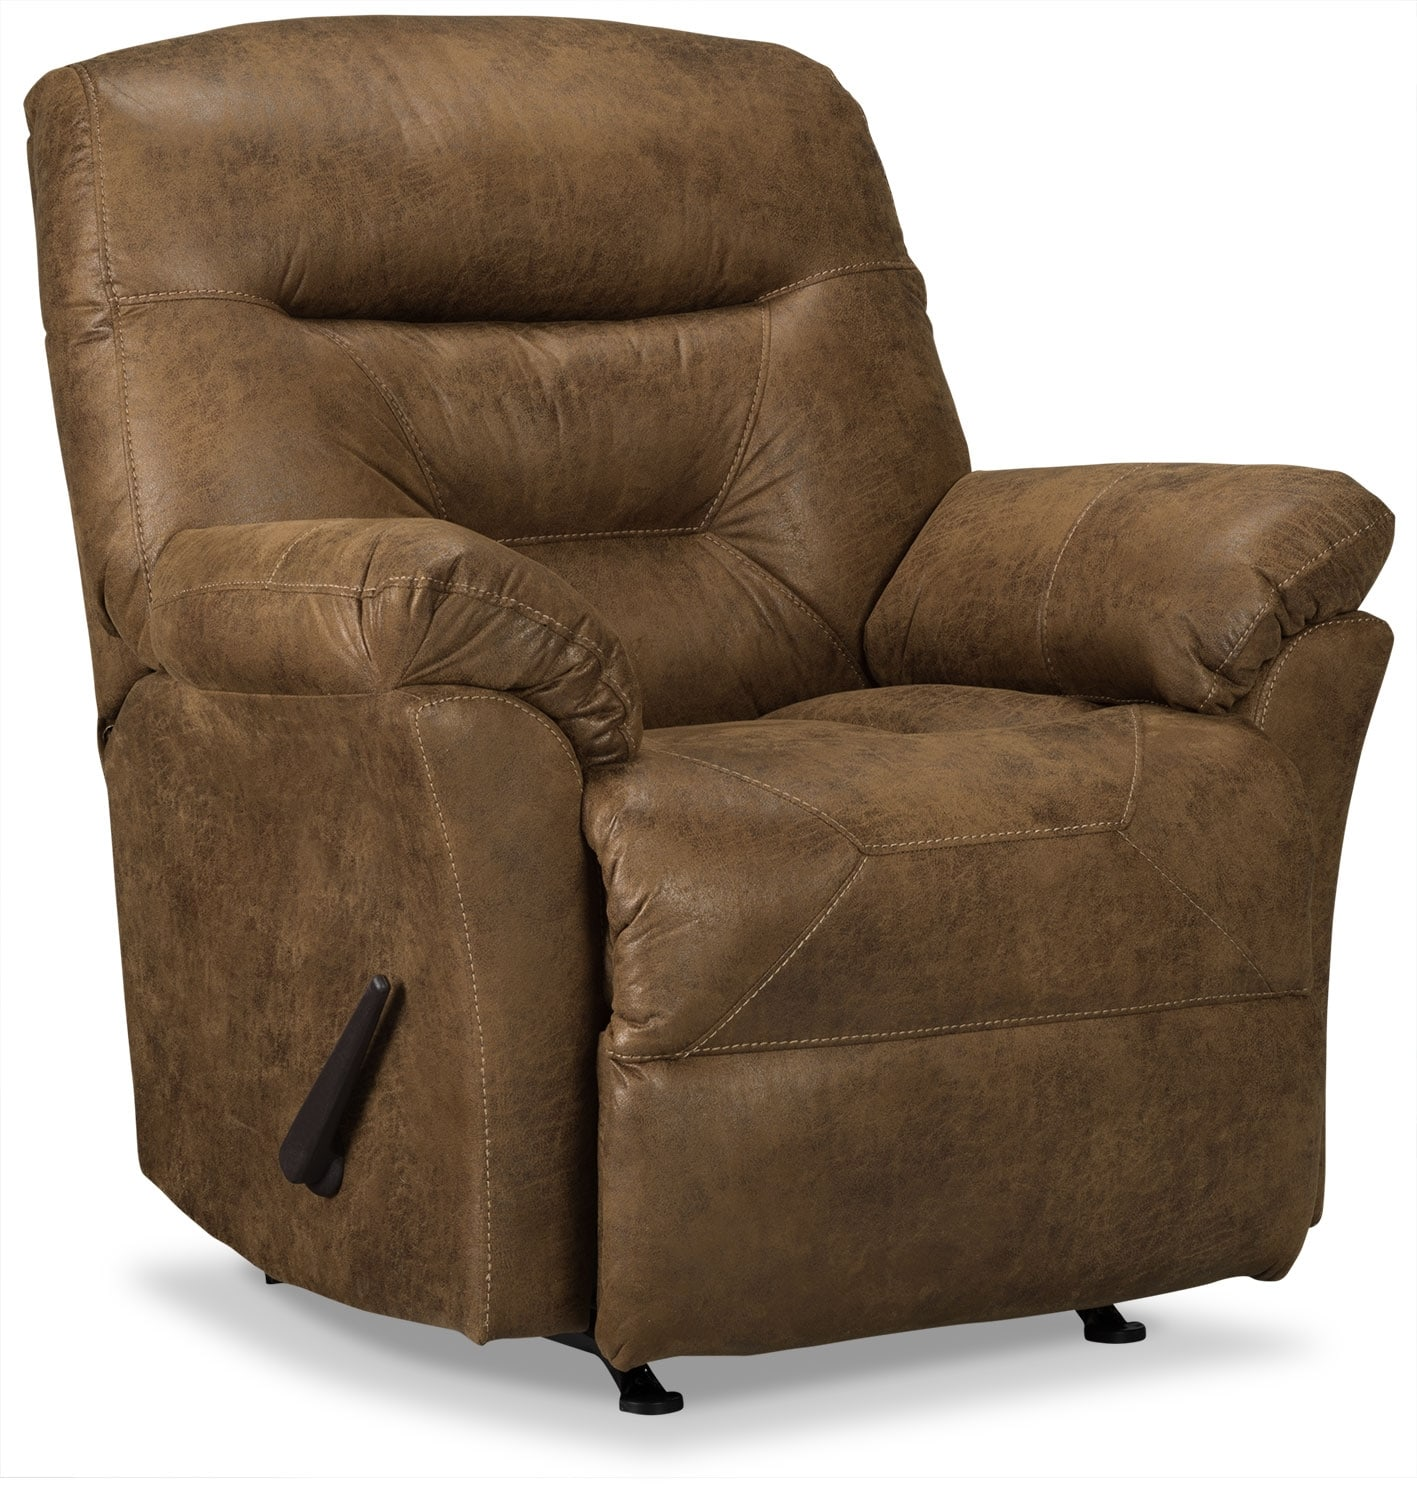 Living Room Furniture - Designed2B Recliner 4579 Leather-Look Fabric Rocker Recliner - Stout